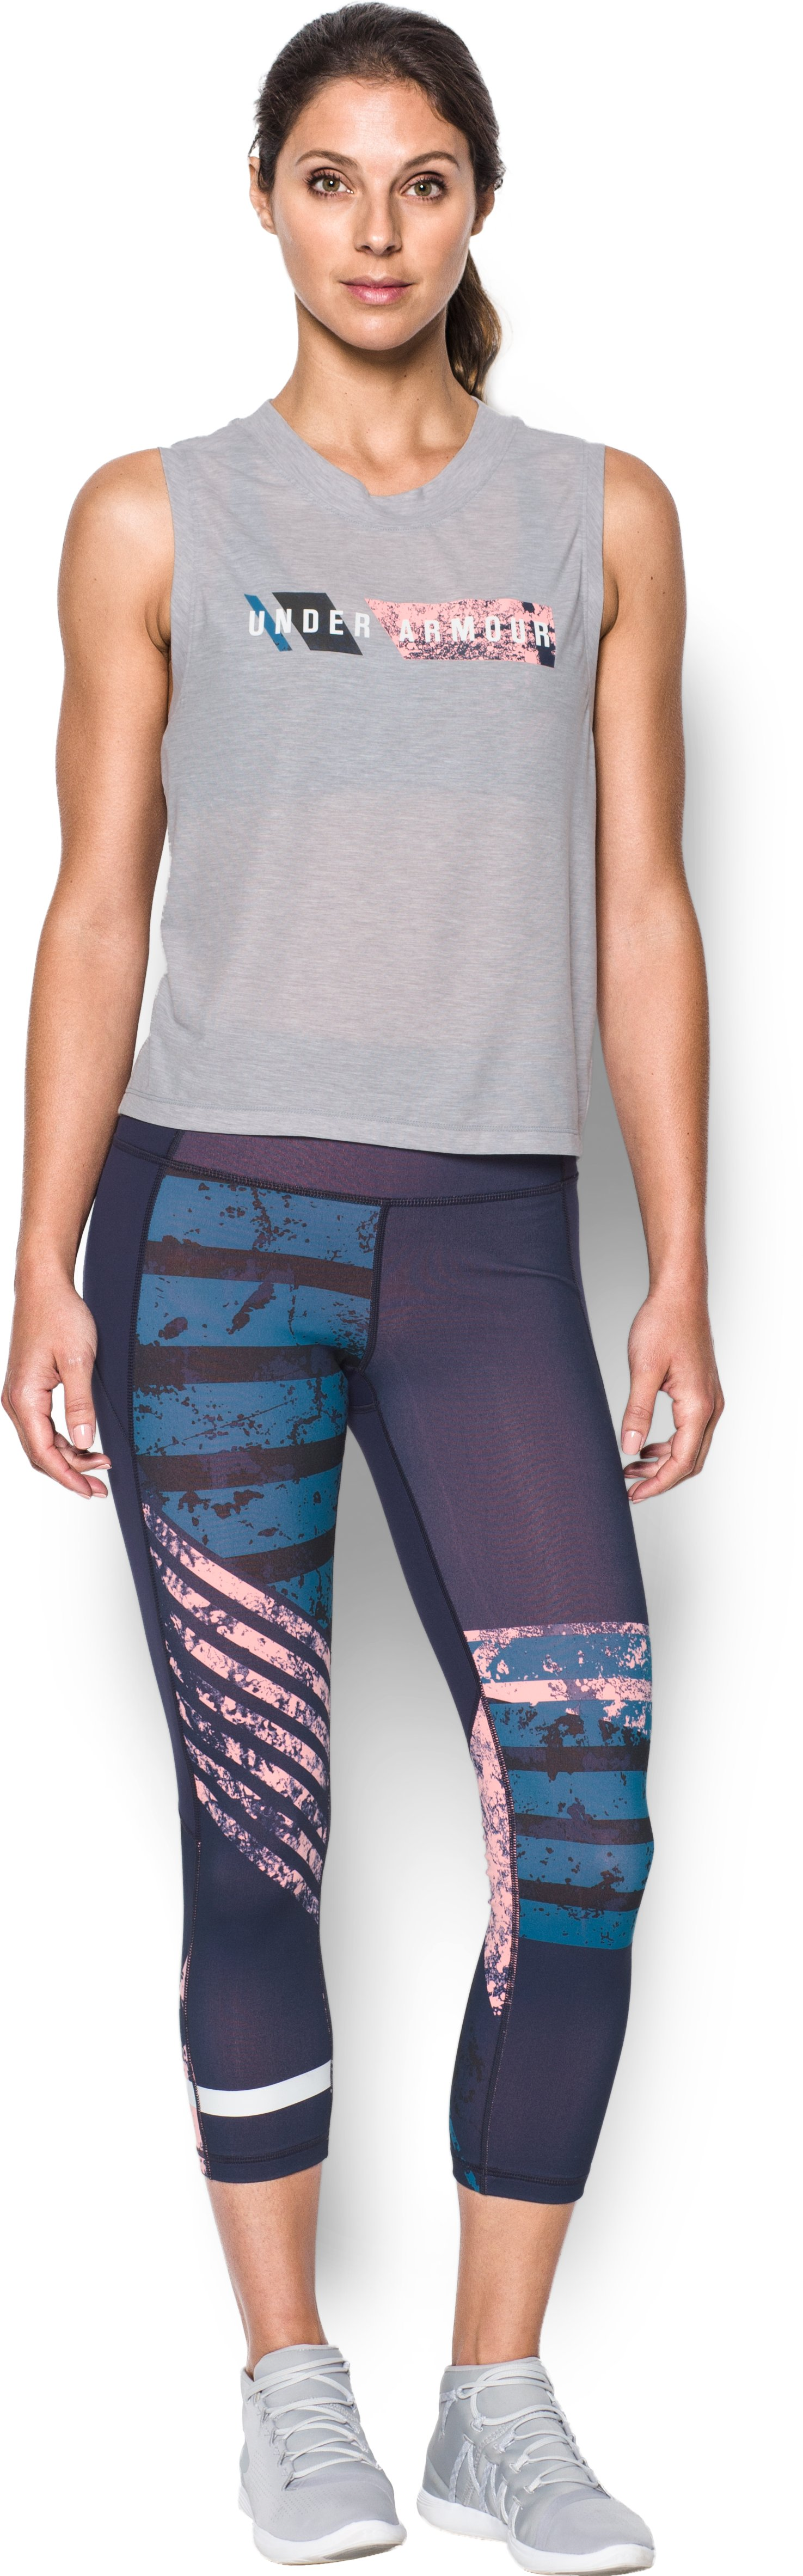 Women's UA Breathe Muscle Wordmark, True Gray Heather